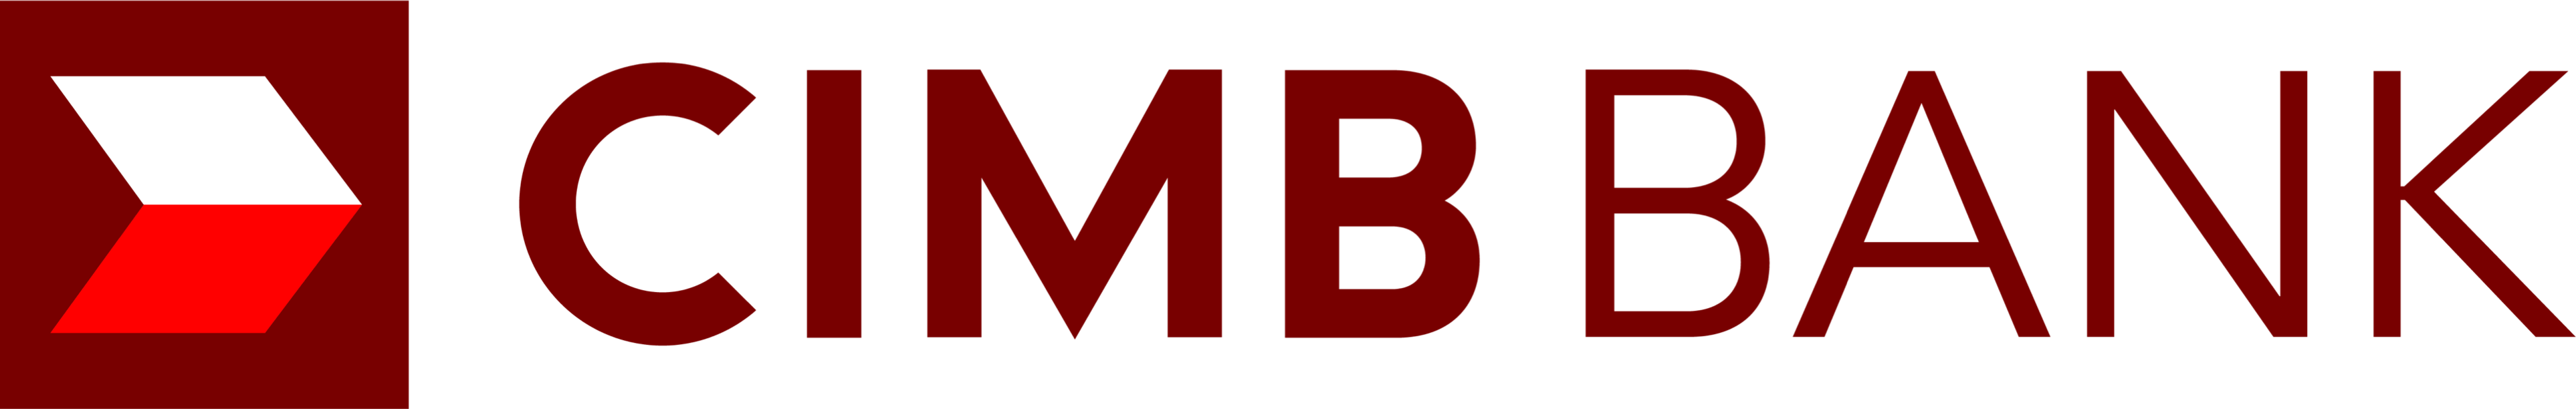 Services - Financial - GCredit - CIMB - 3852x612 - Logo - Horizontal